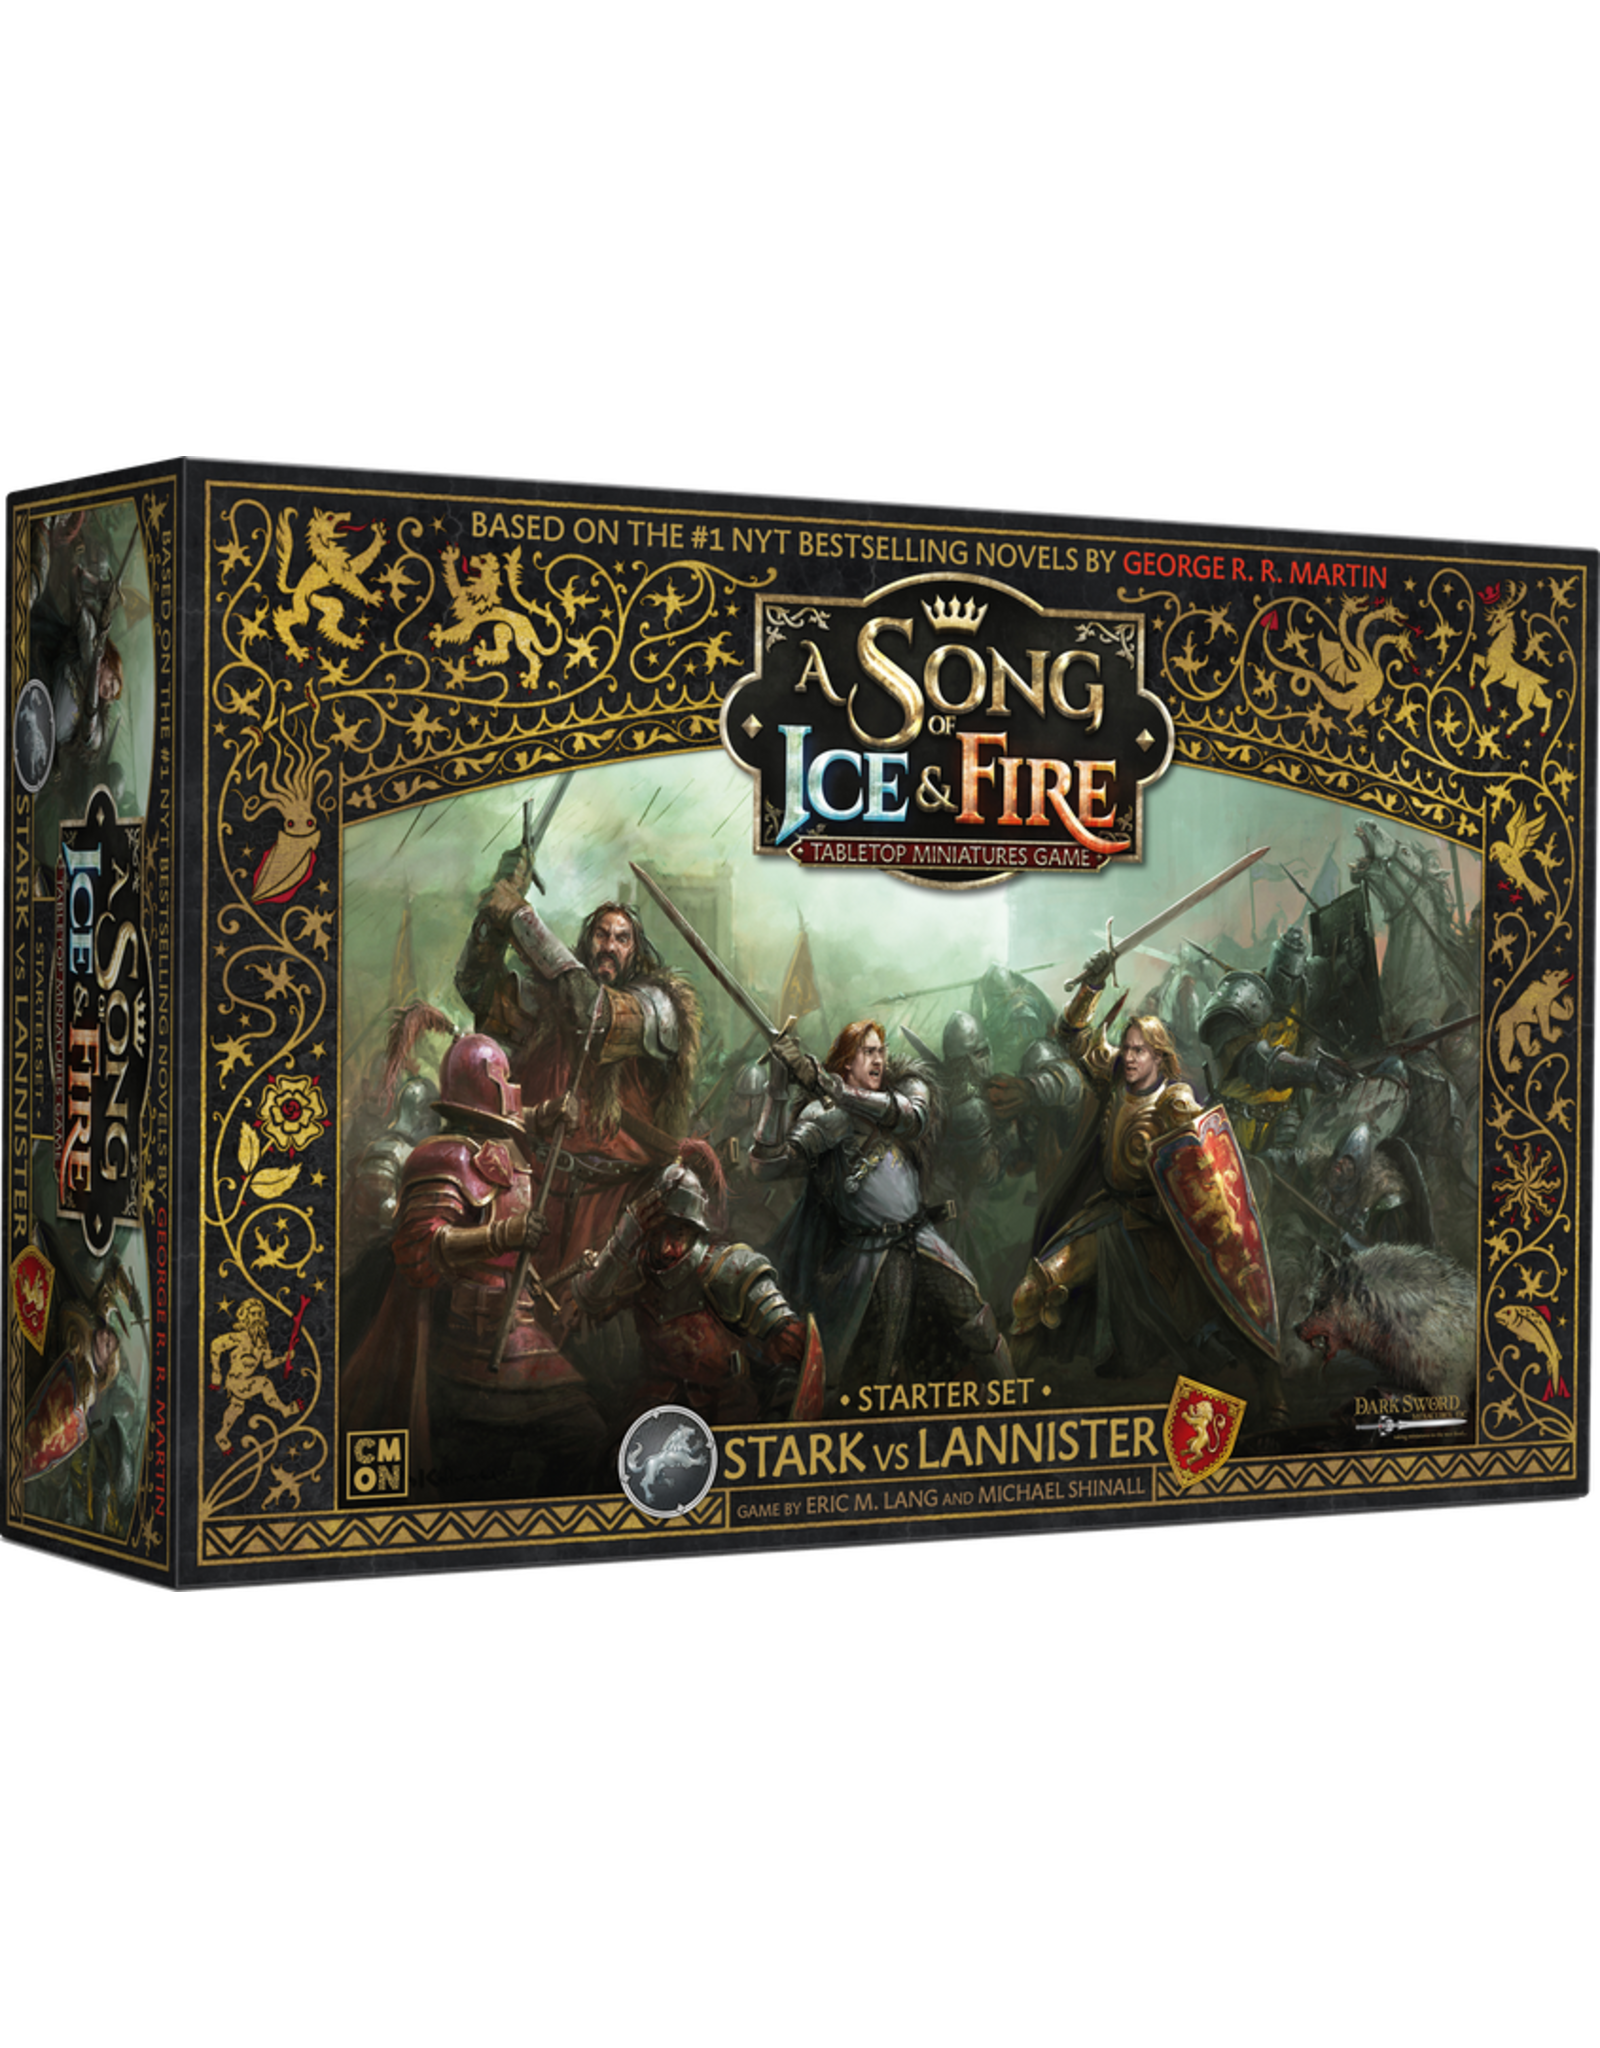 CMON A Song of Ice & Fire: Tabletop Miniatures Game: Starter Set - Stark vs Lannister